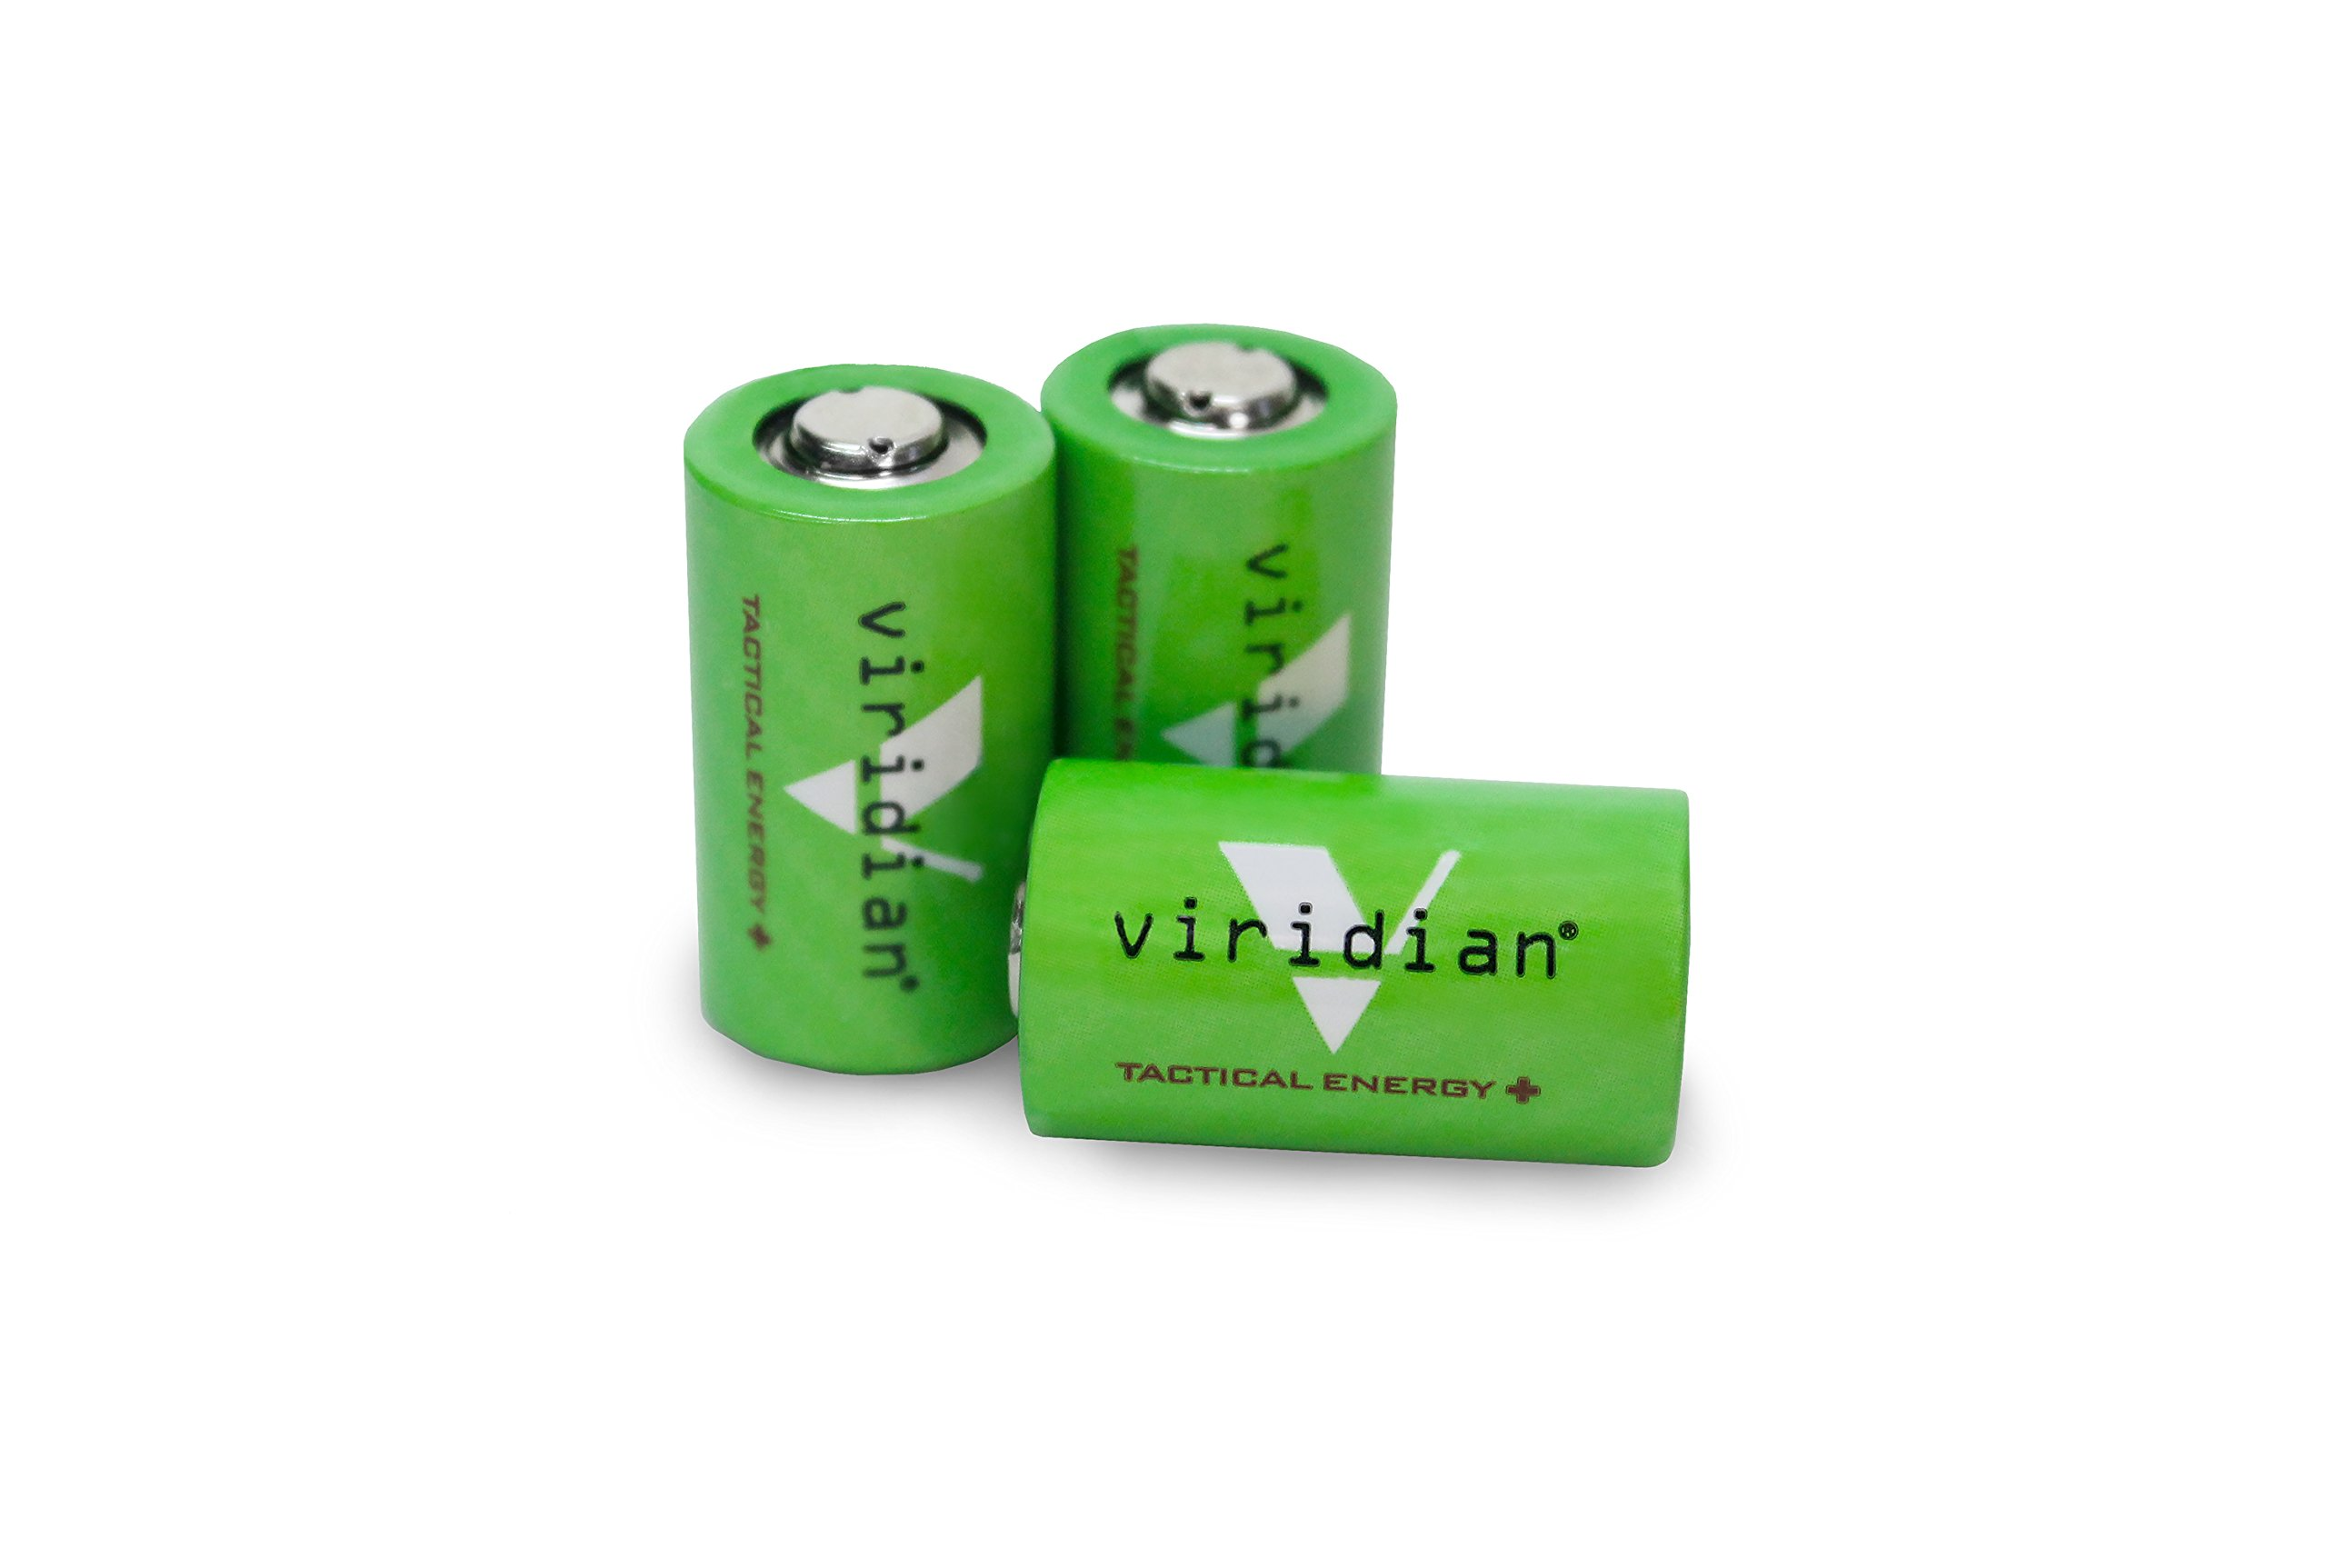 Viridian CR2 3v Lithium Battery (3-pack) by VIRIDIAN WEAPON TECHNOLOGIES (Image #1)